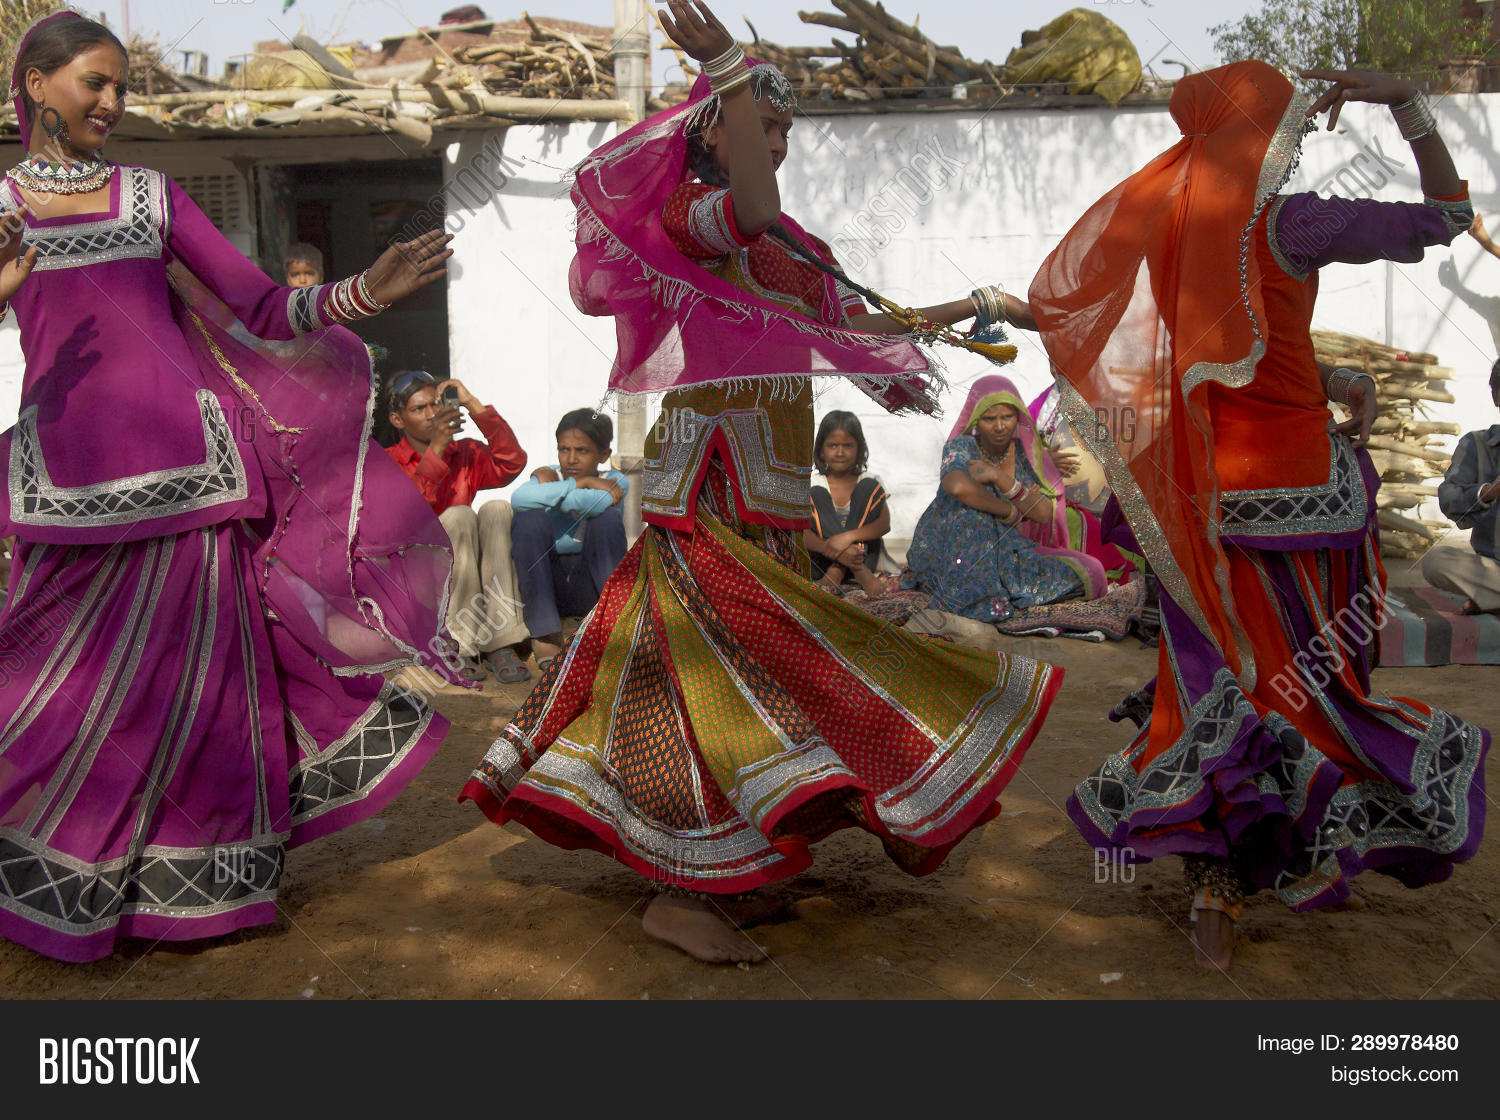 a562cf684aee Jaipur, Rajasthan, India - March 9, 2009: Tribal dancers in colourful  costumes performing a traditional dance outside in their home community in  Jaipur, ...